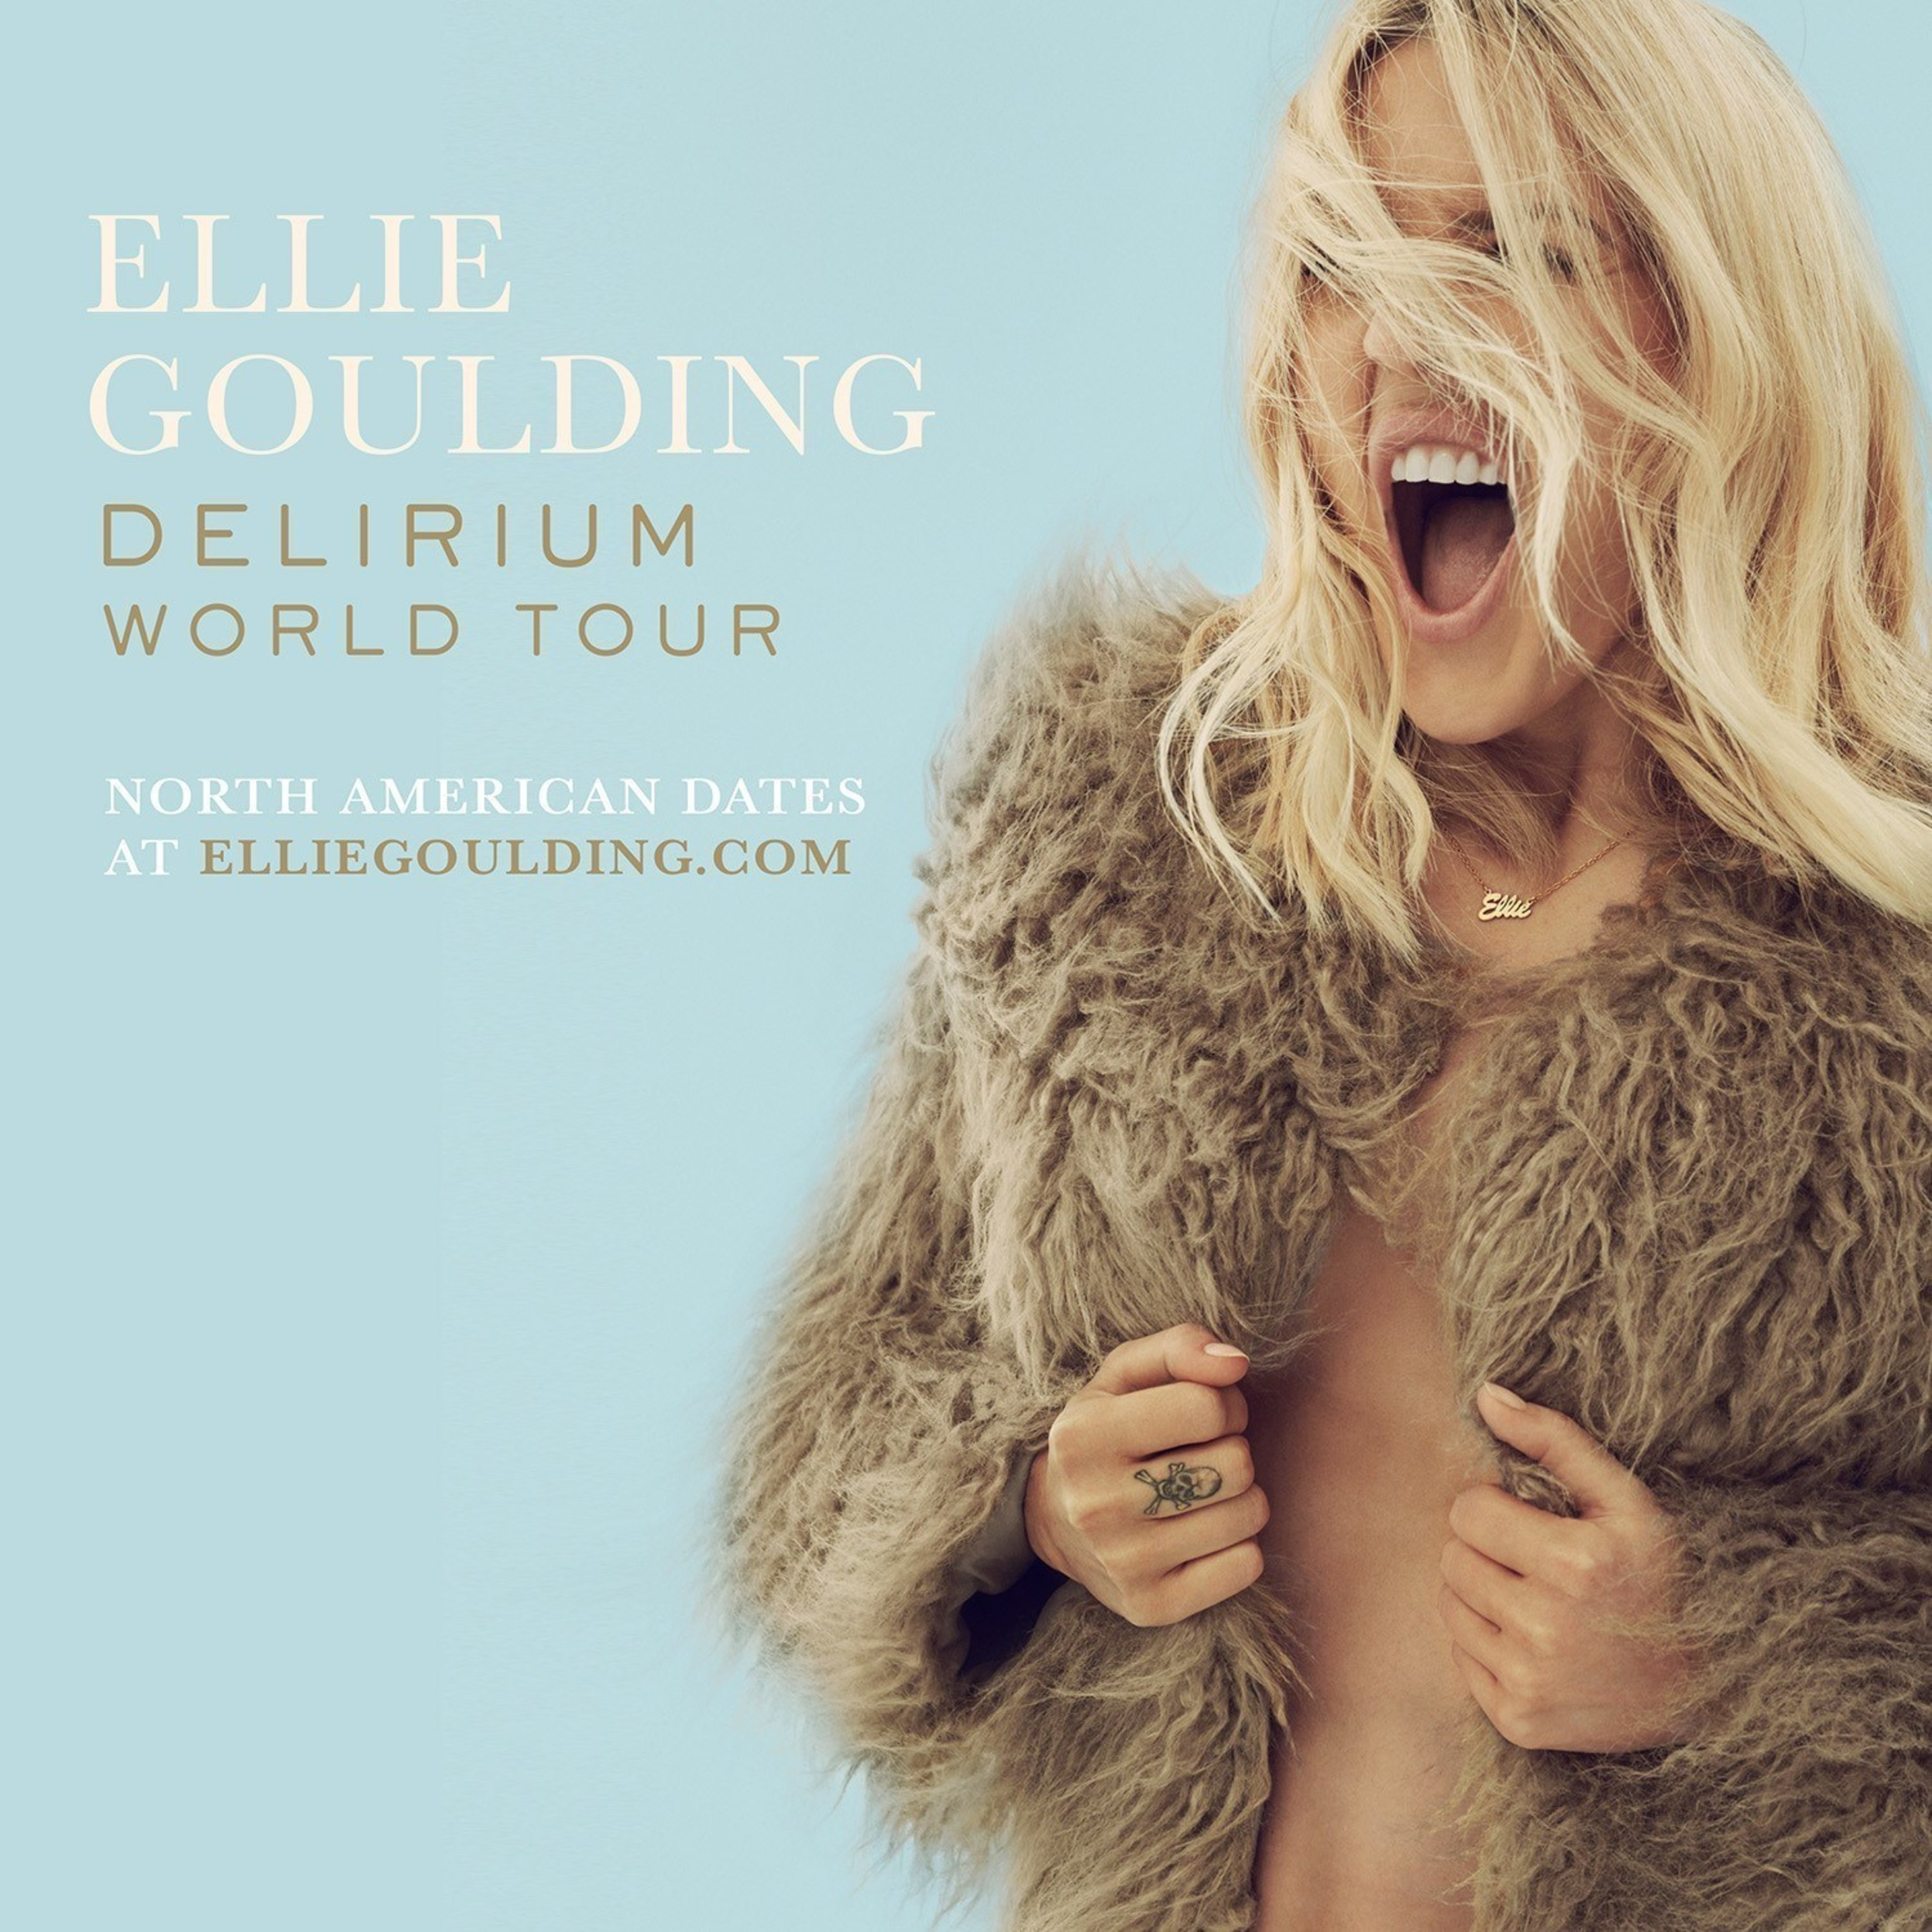 Ellie Goulding Announces Dates For The North American Leg Of Her Delirium World Tour